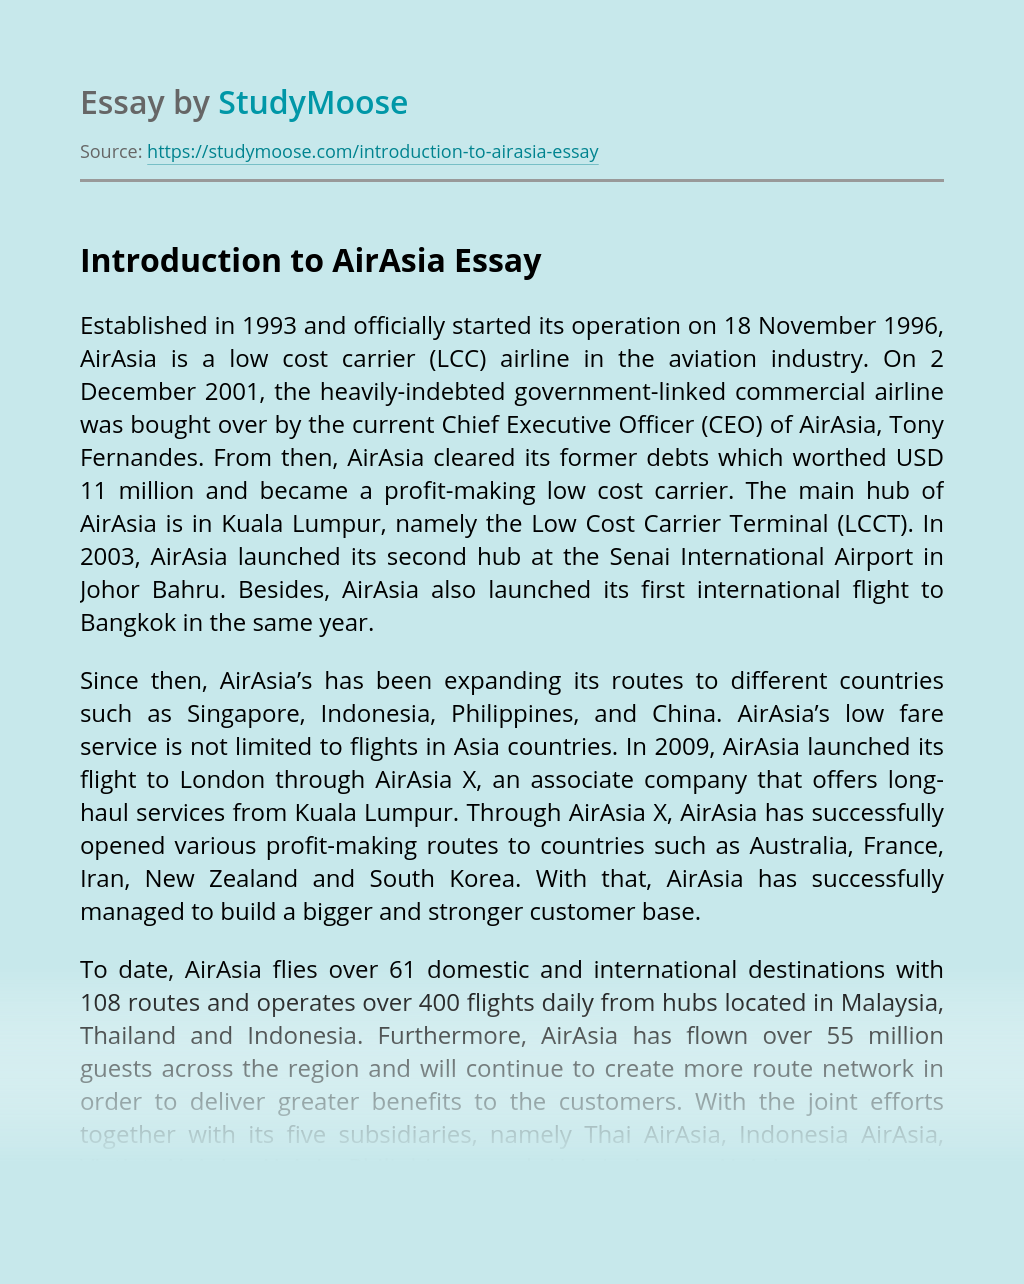 Introduction to AirAsia